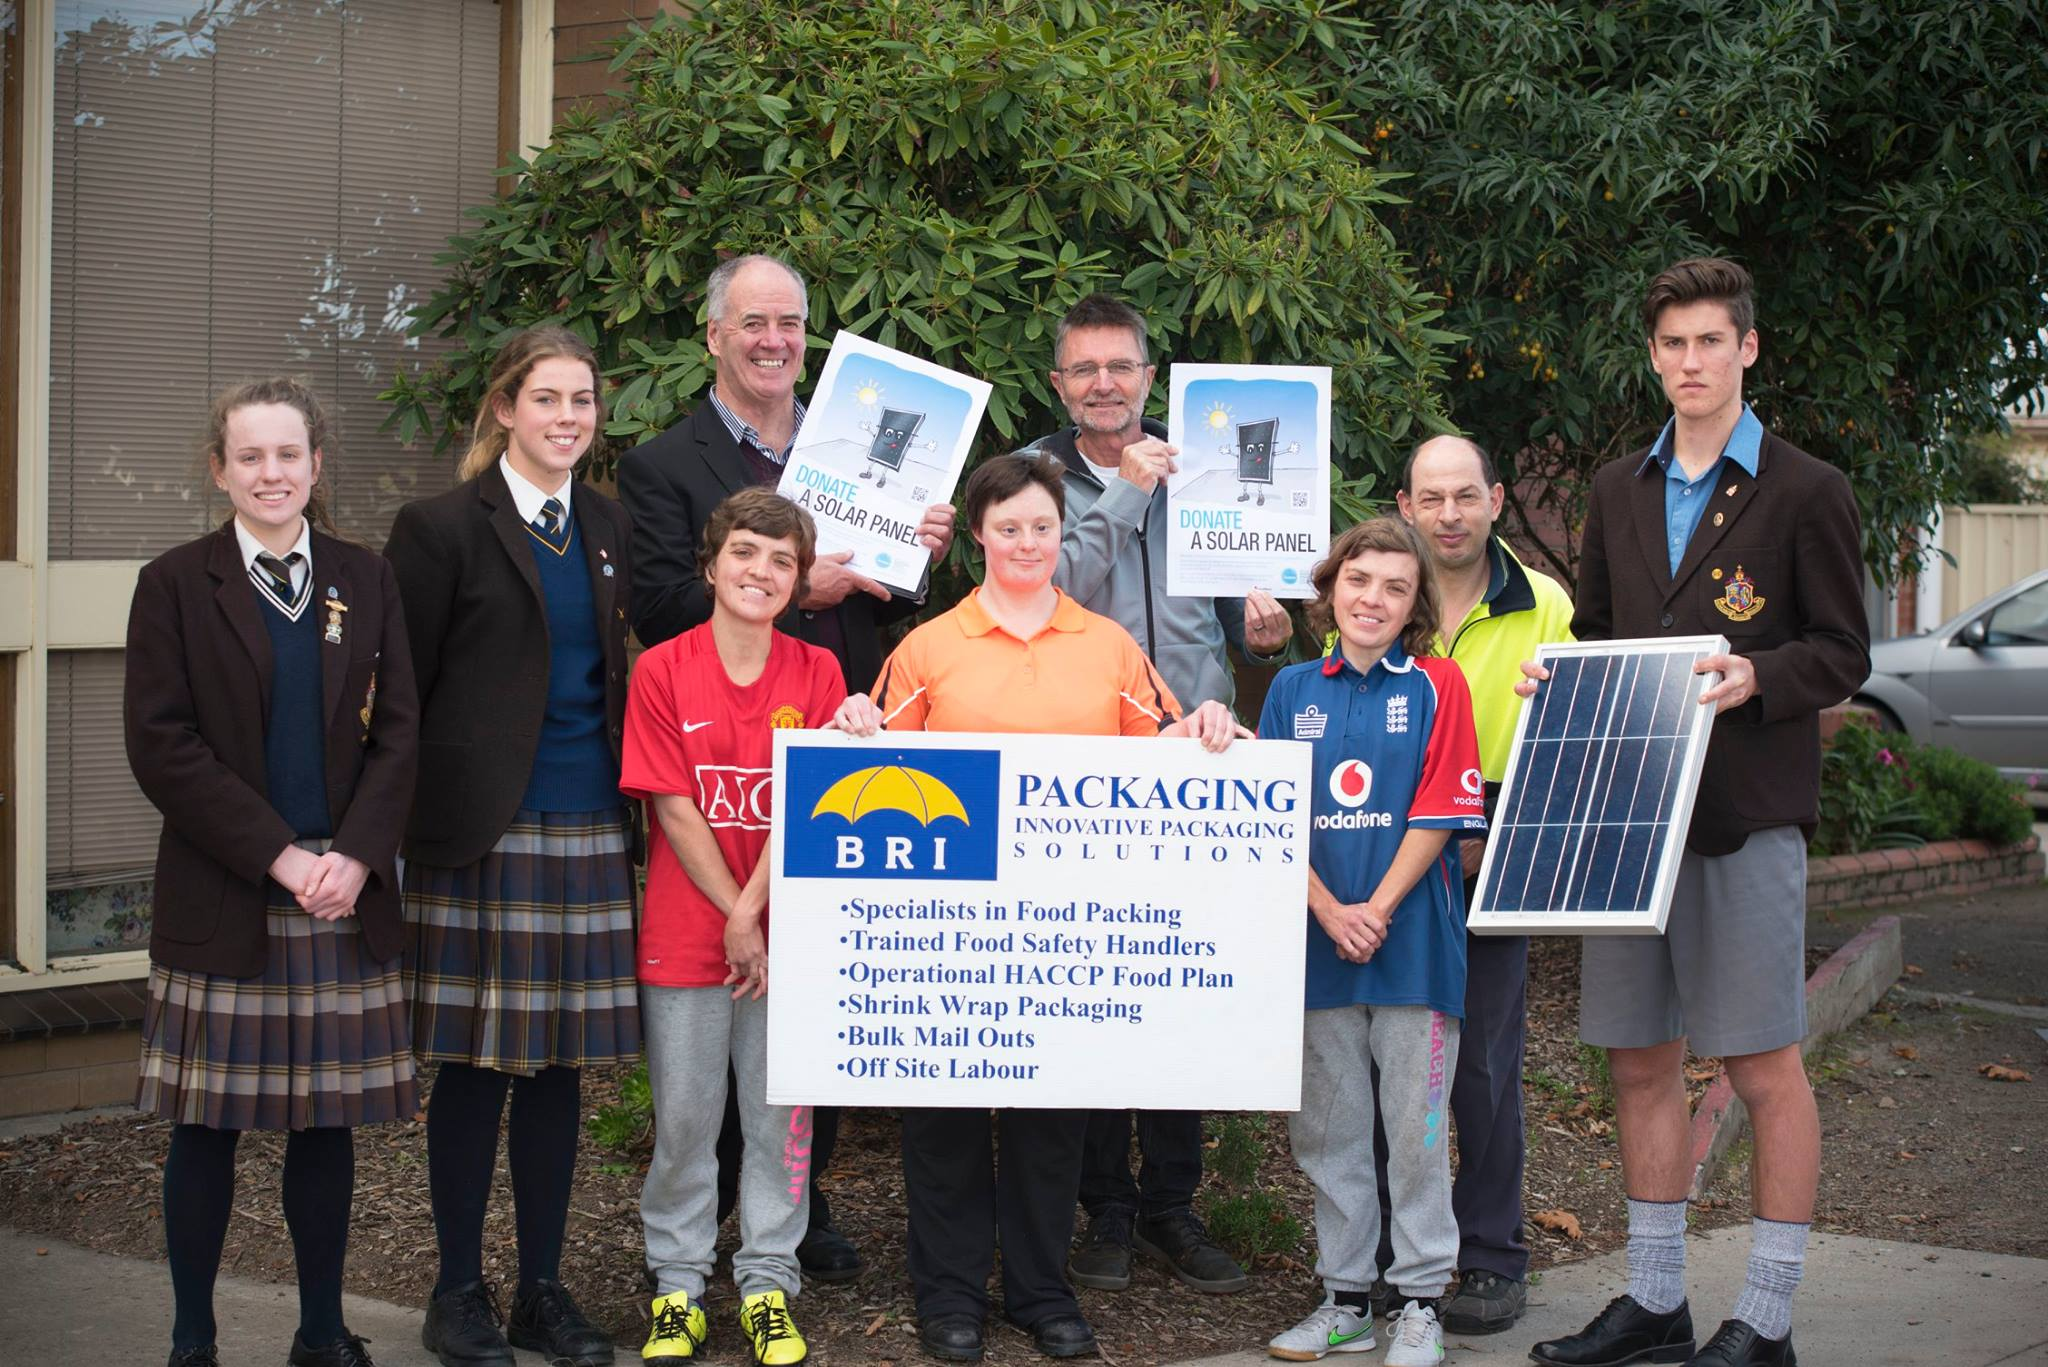 Social Solar for BRI - Ballarat Renewable Energy and Zero Emissions